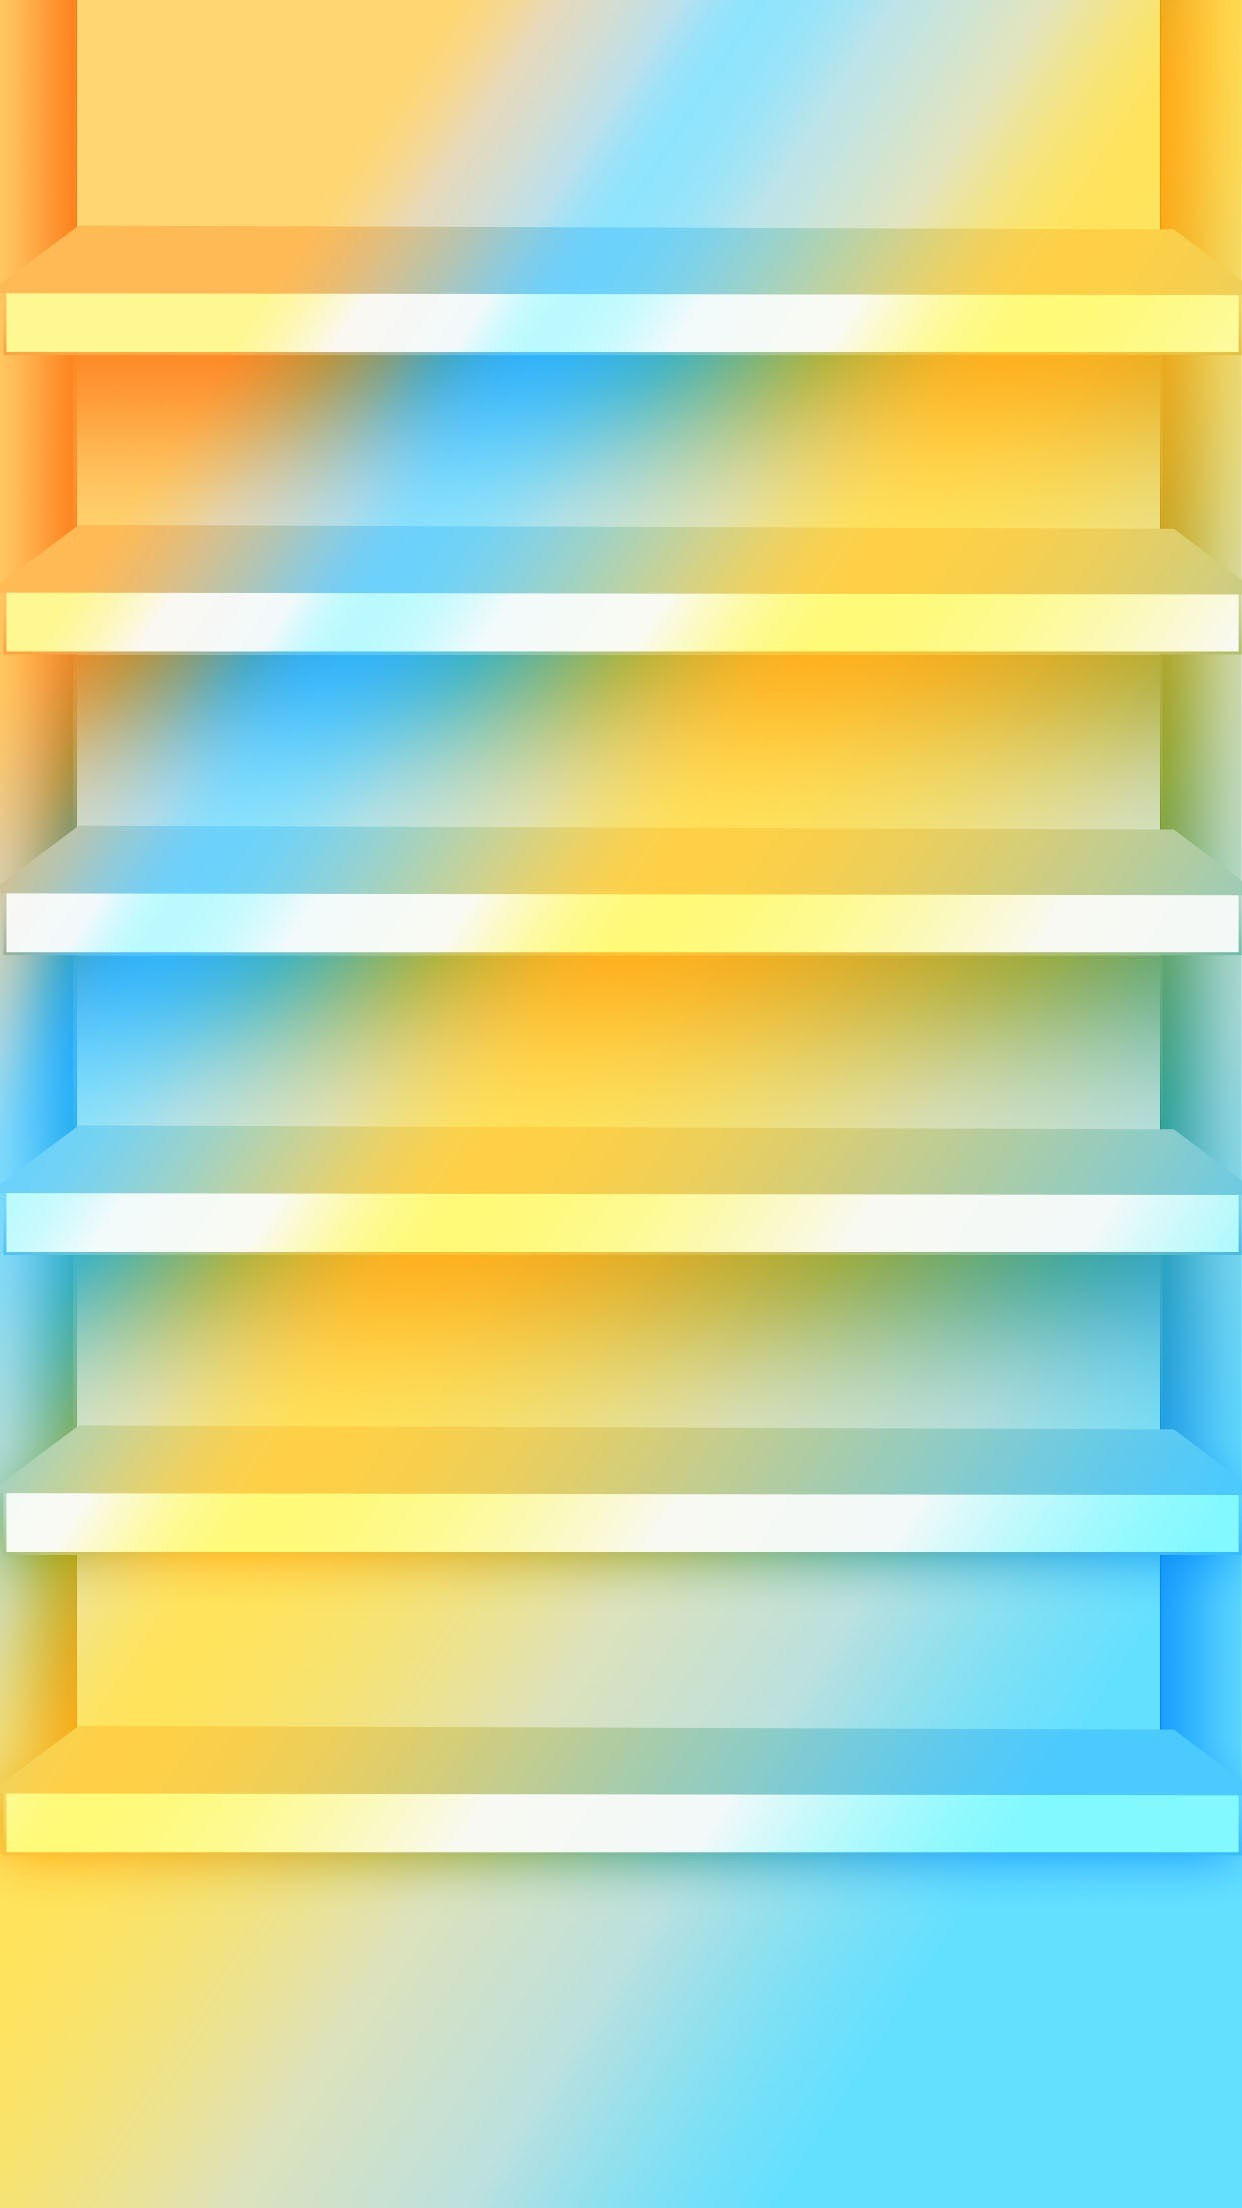 1242x2208 Shelves Stylish Blue Yellow Gradient Ombre Bright